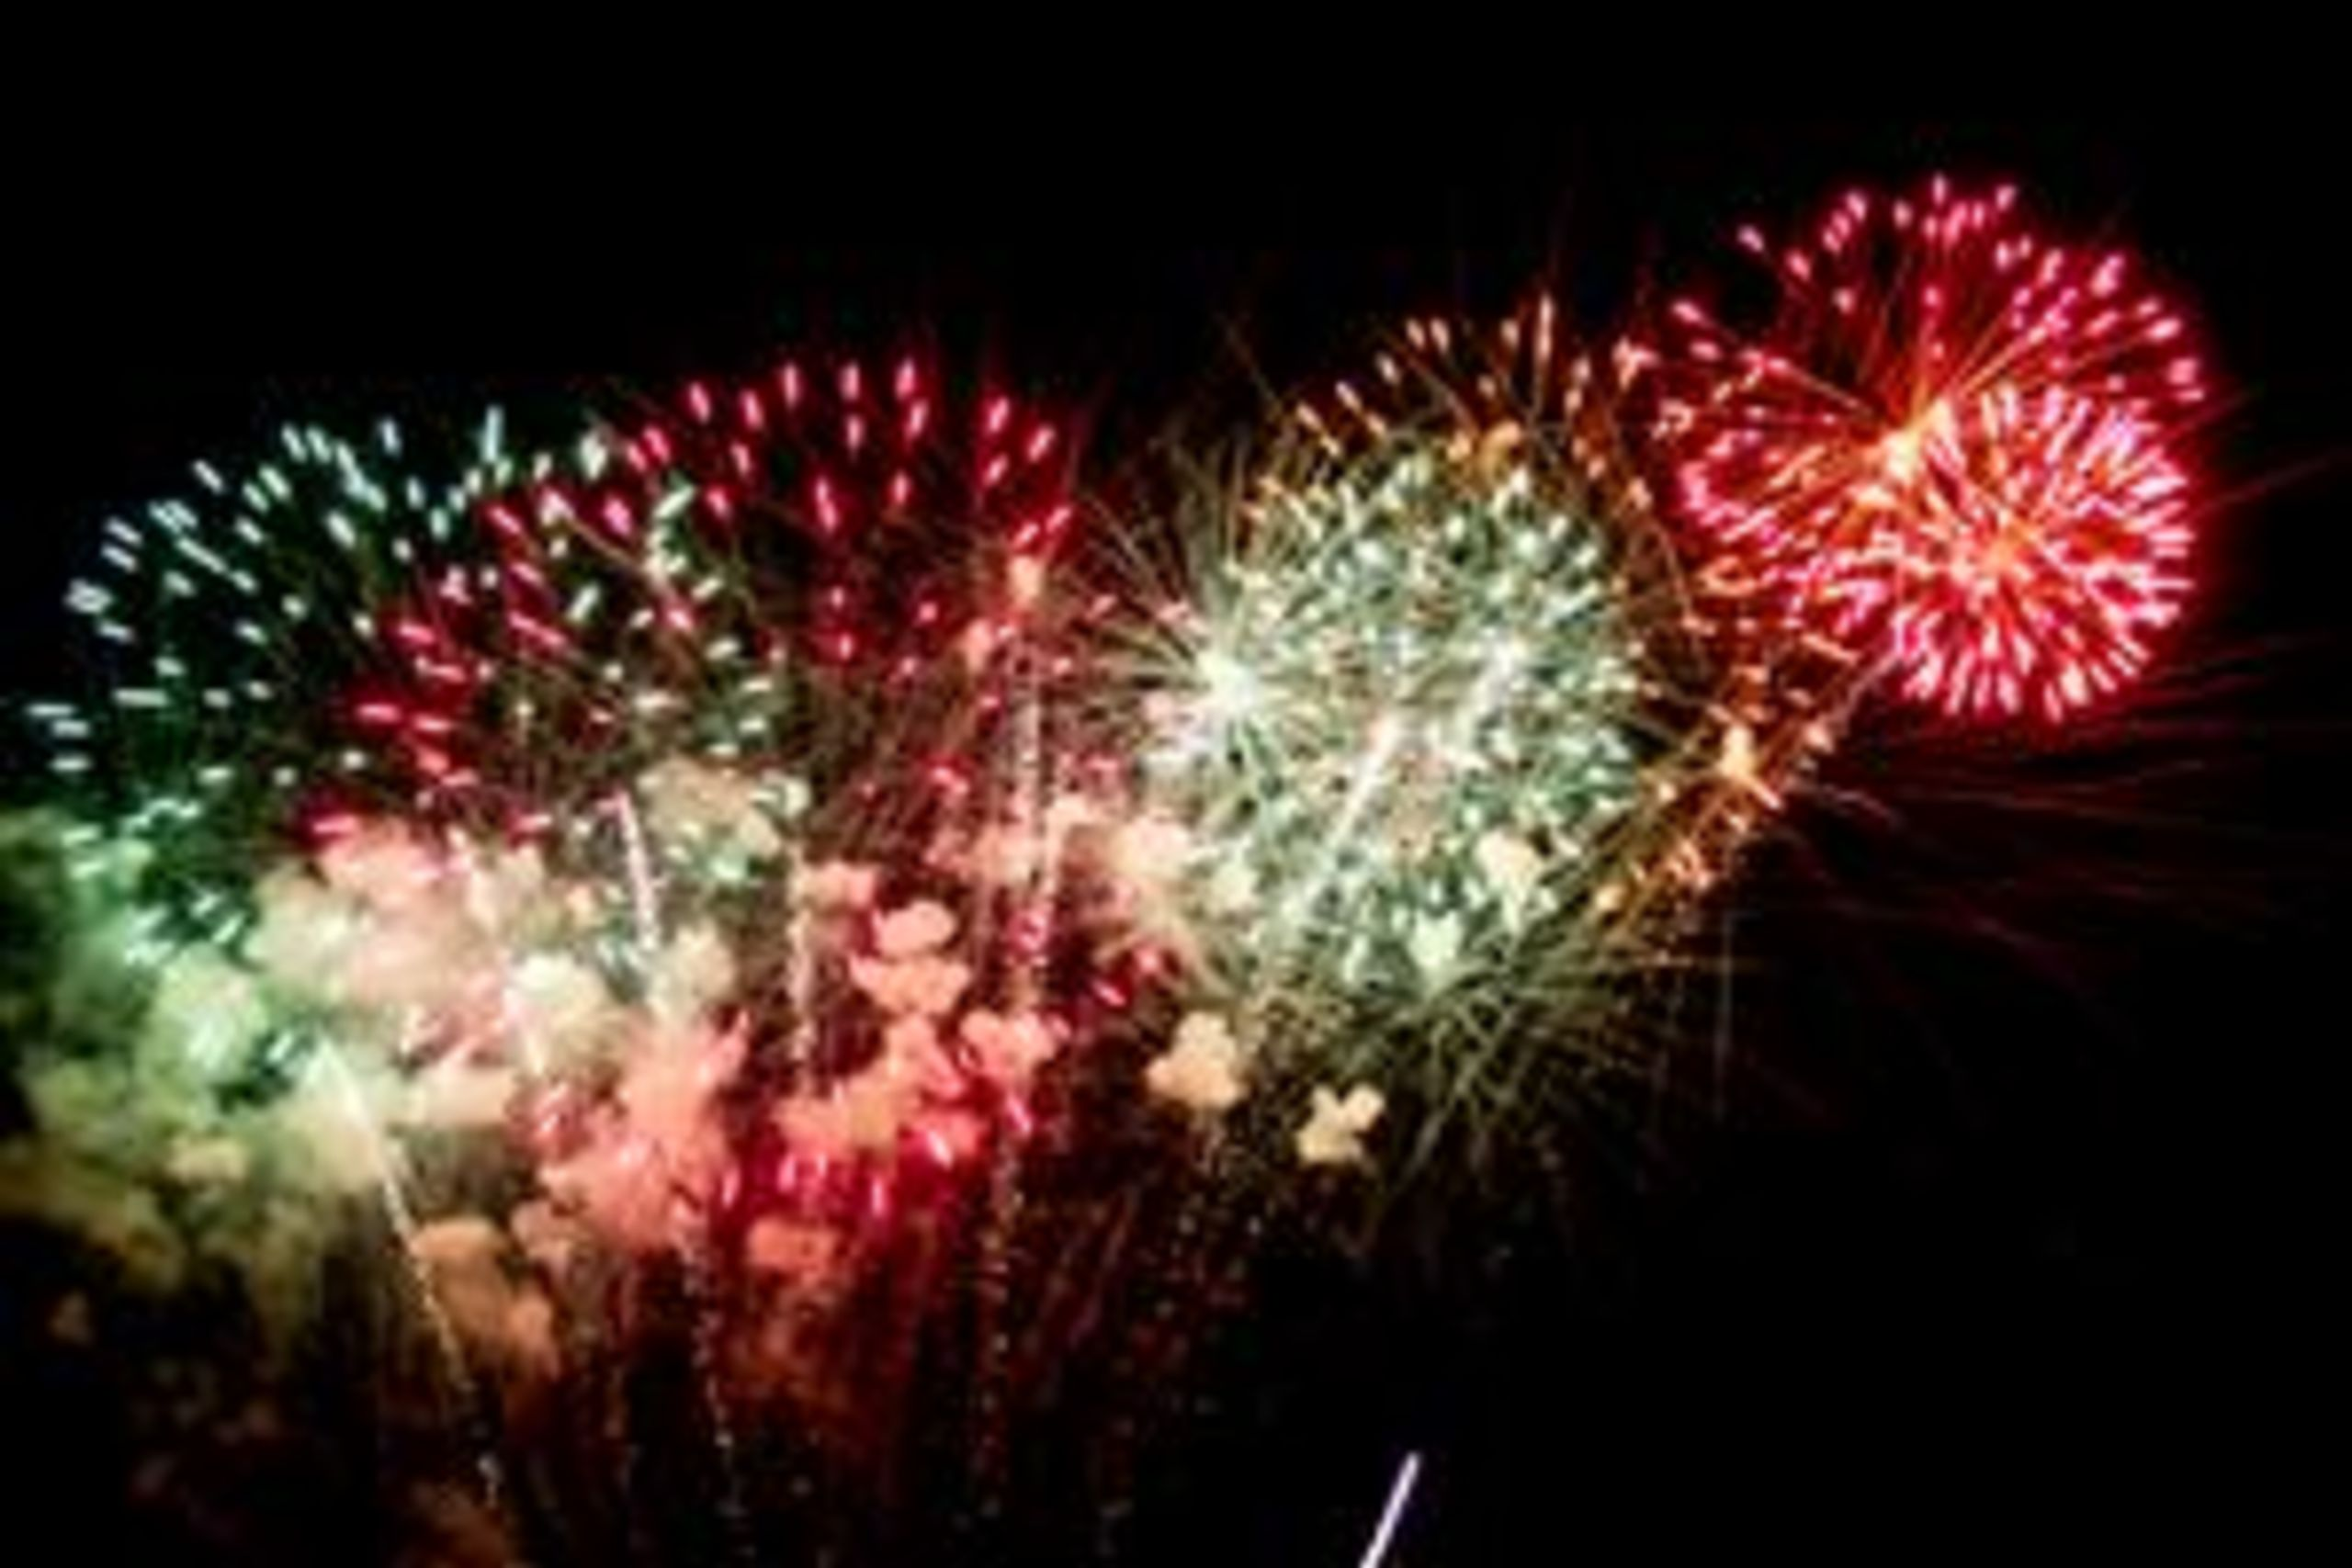 Come enjoy the beautiful fireworks at Horsham Day